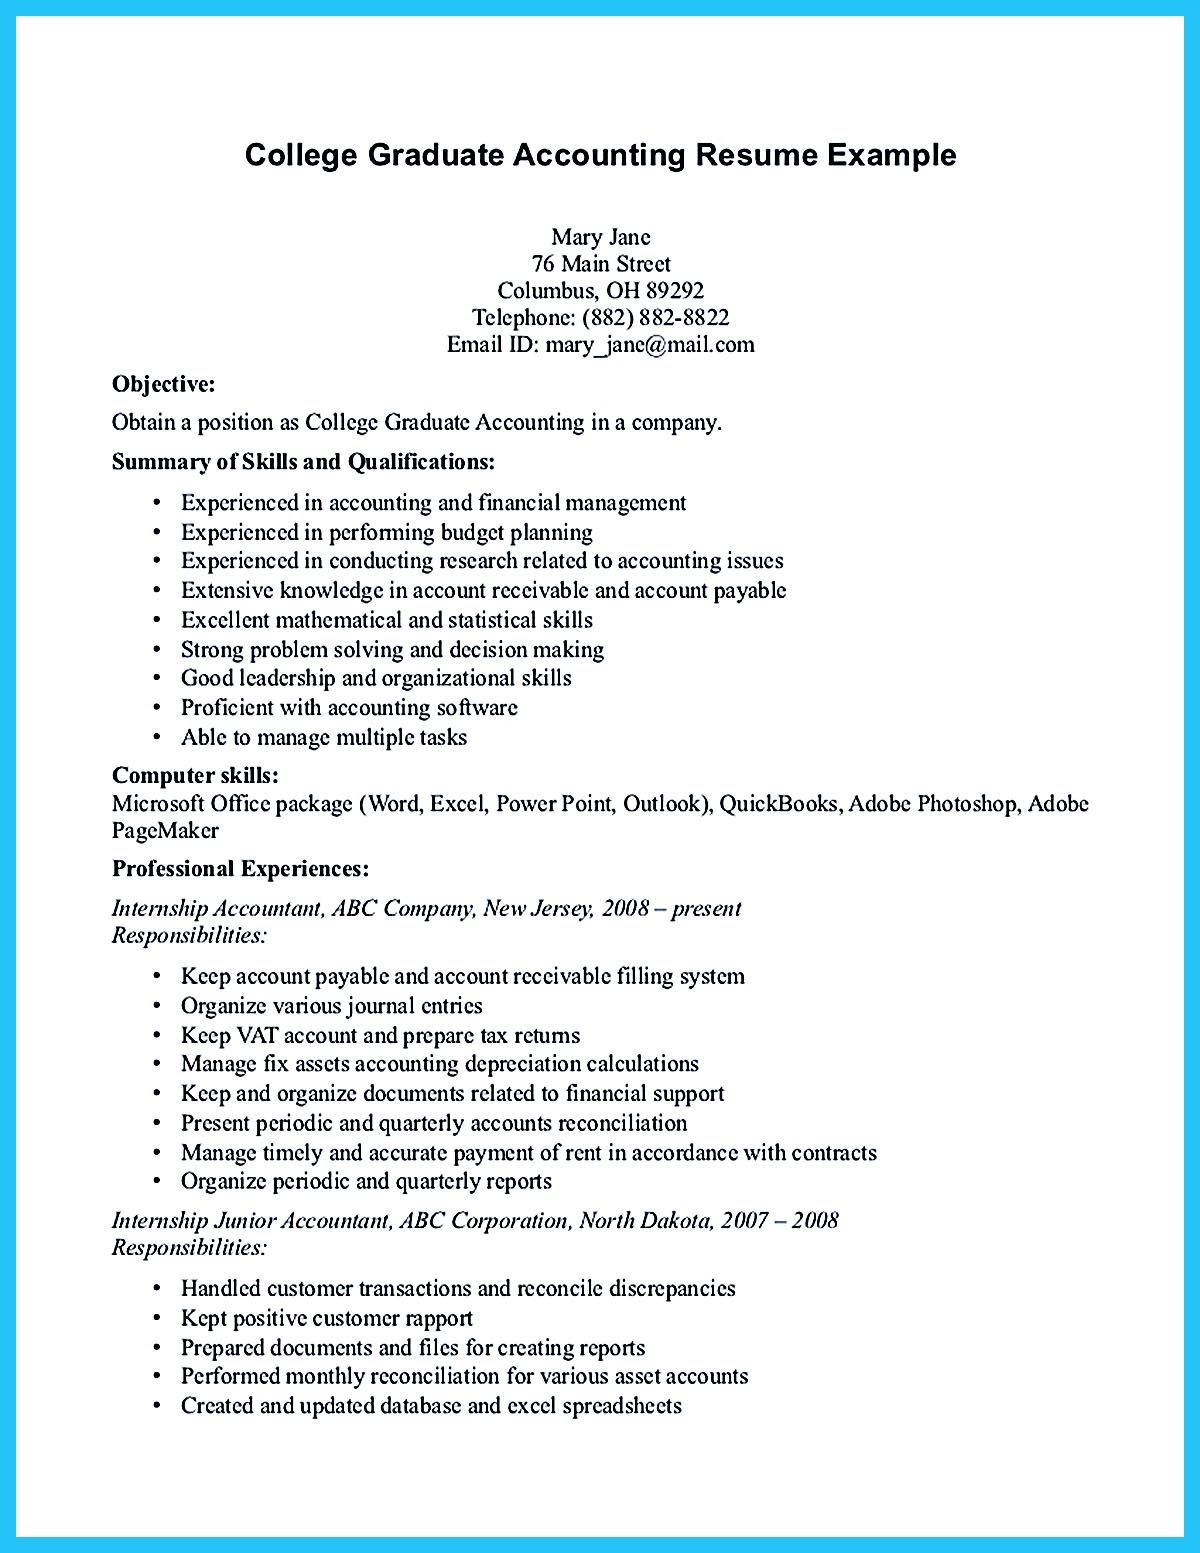 sample application letter for accountant with no experience